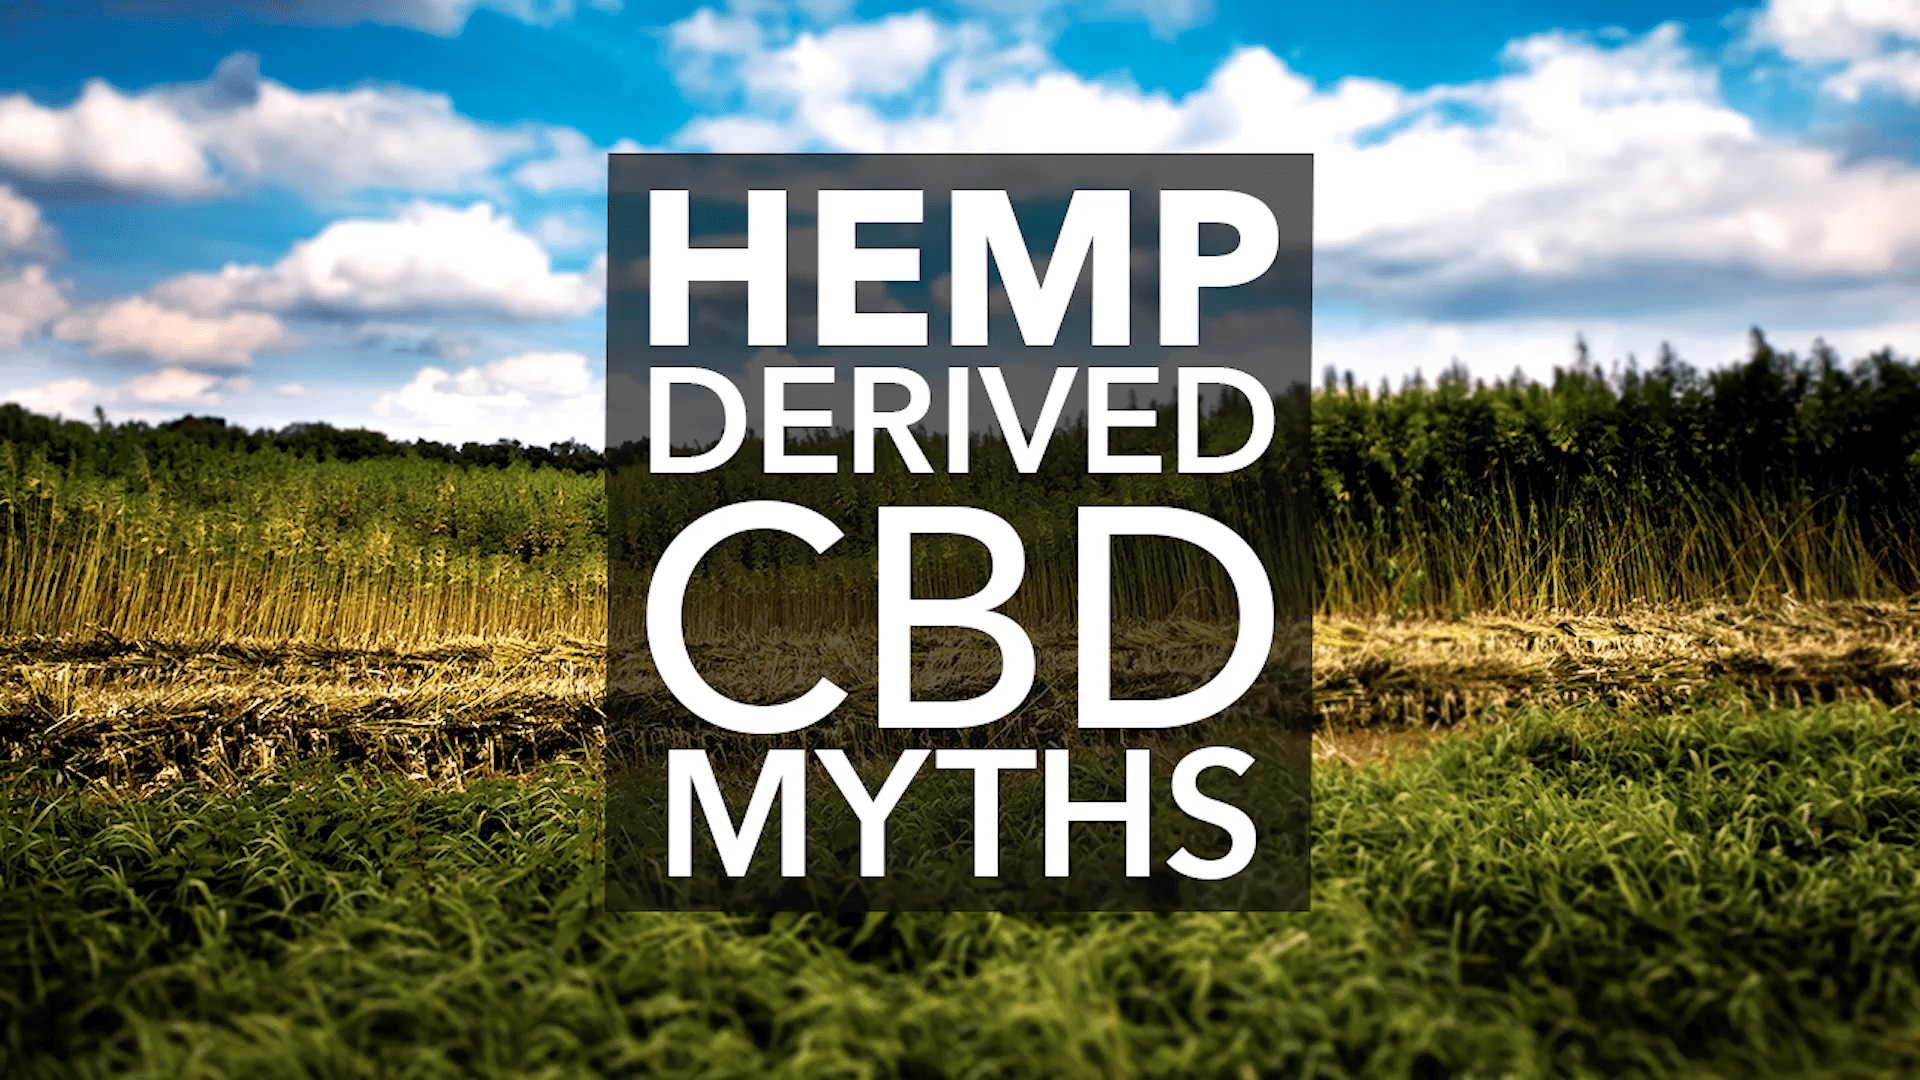 Despite its growing popularity, there are still myths and misconceptions around hemp-derived CBD oil. Our latest video takes a look at the truth behind 5 CBD myths.